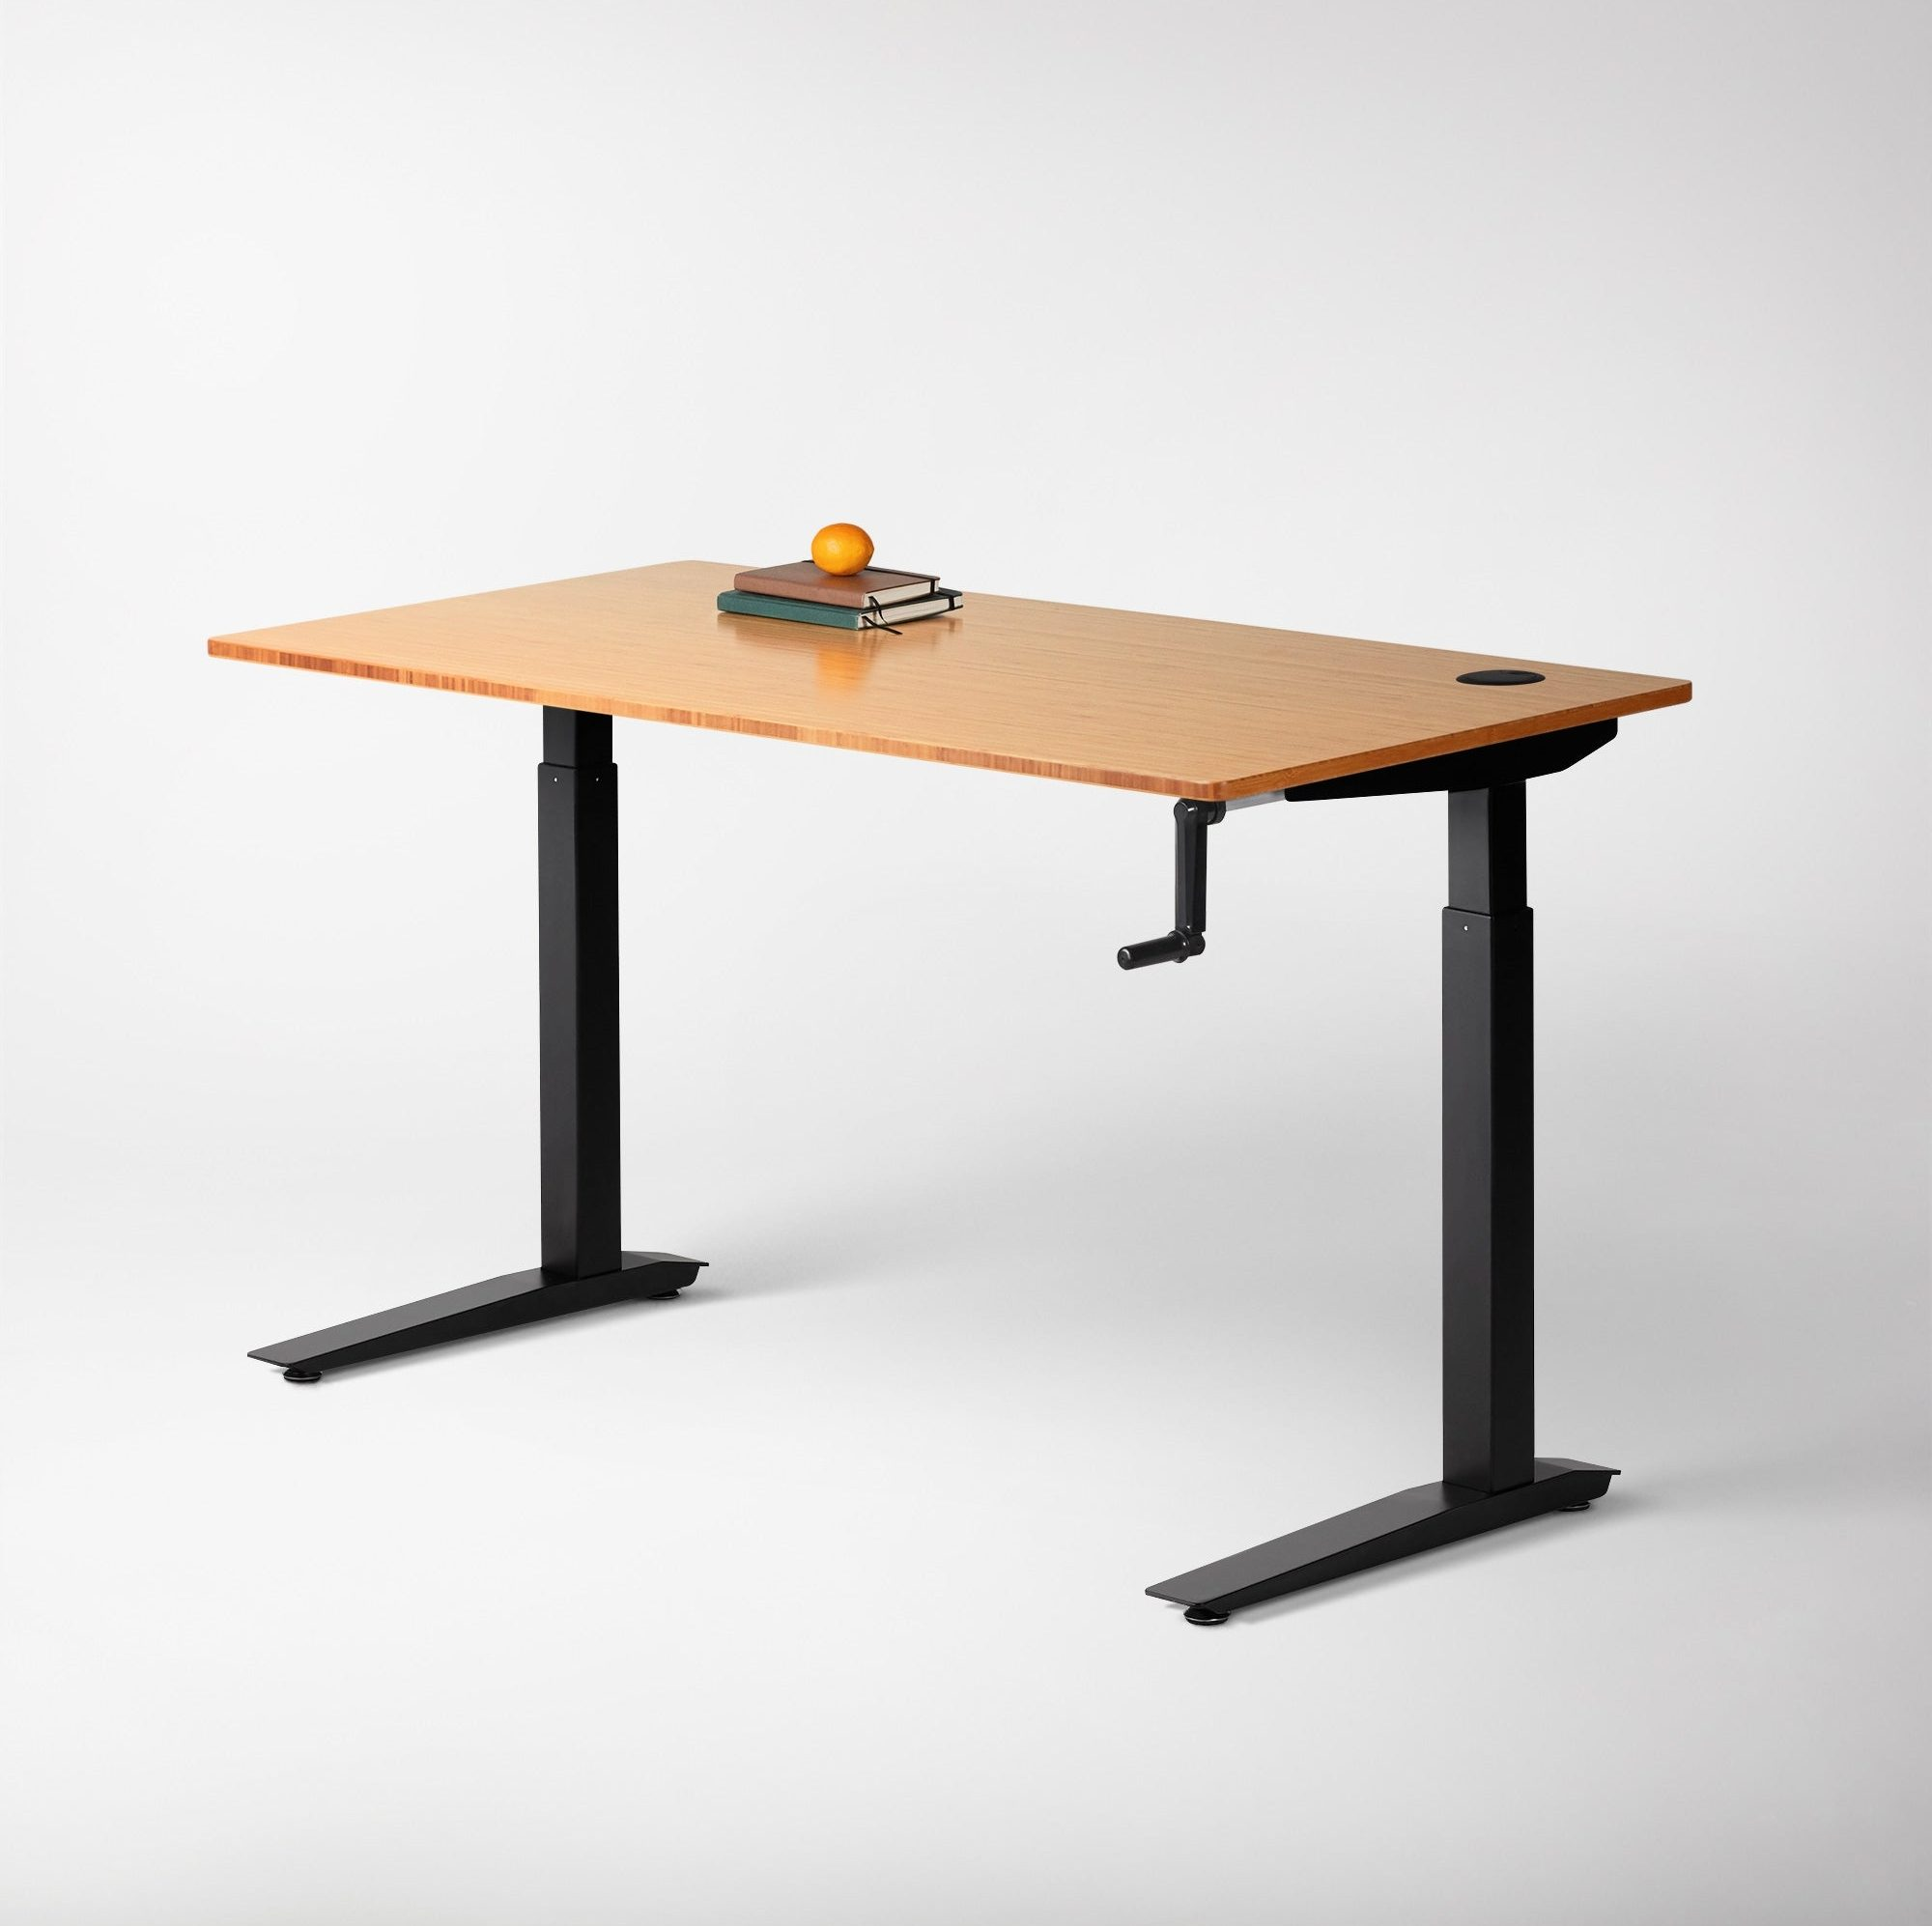 crank operated height adjustable standing desk available in South Africa